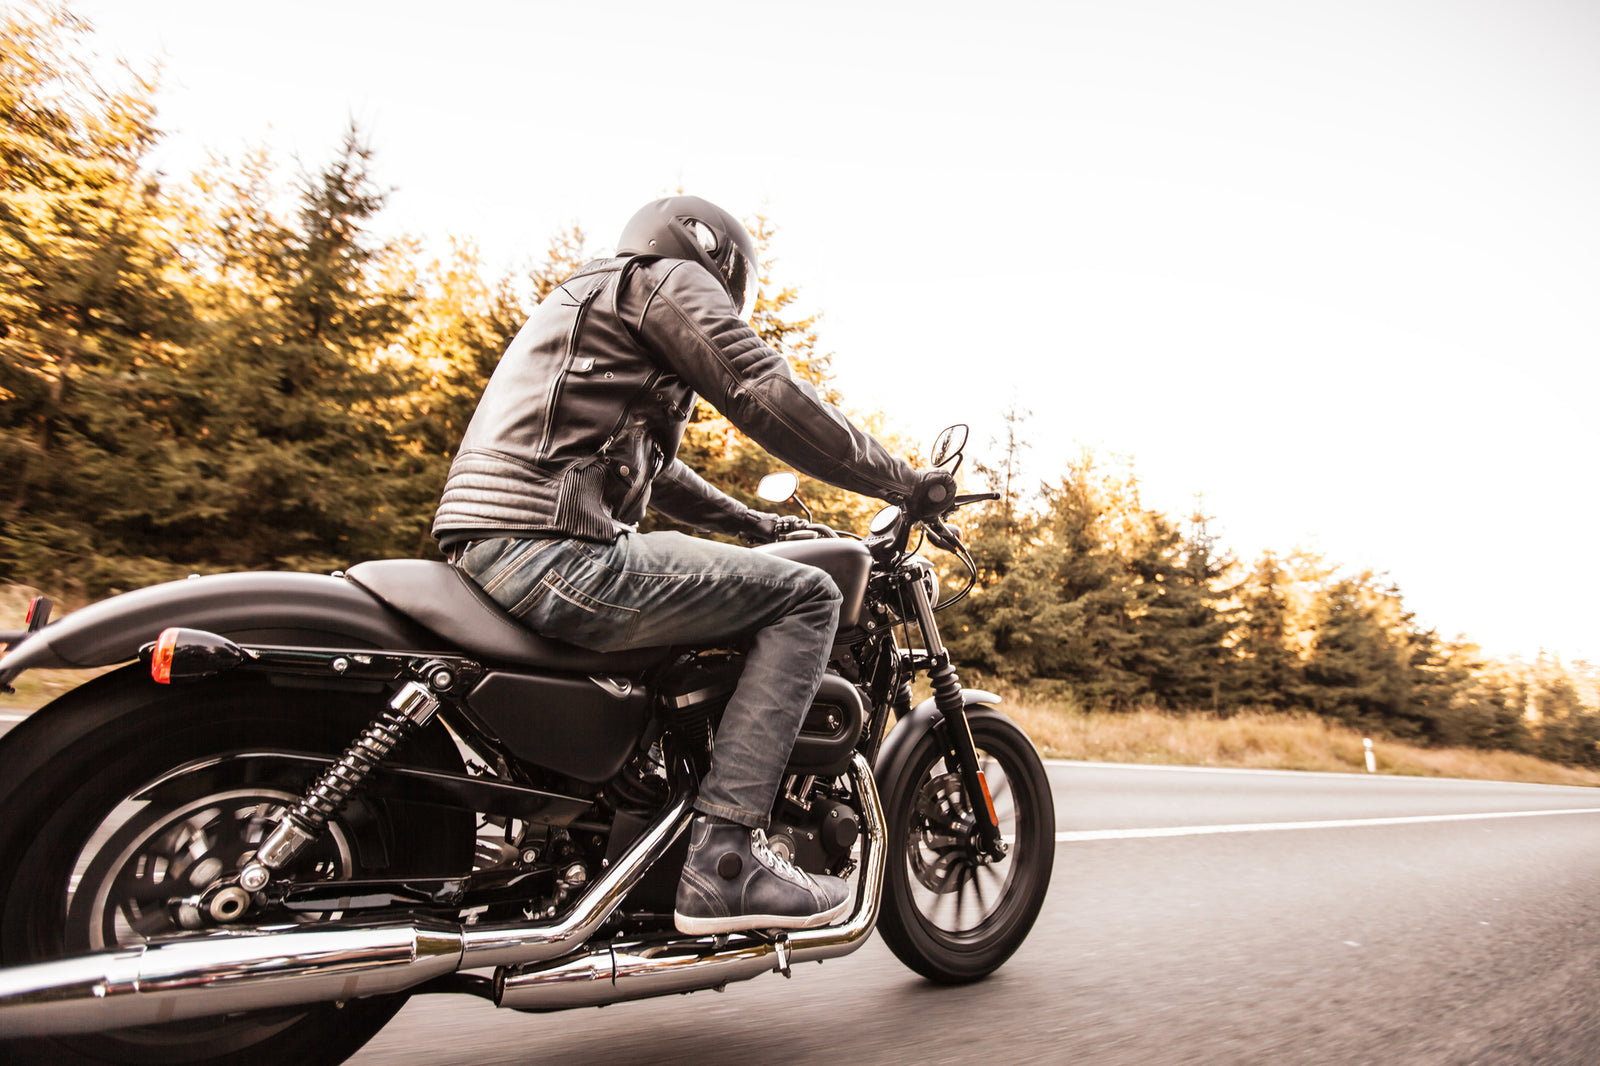 Riding a motorcycle is a fun and enjoyable activity.